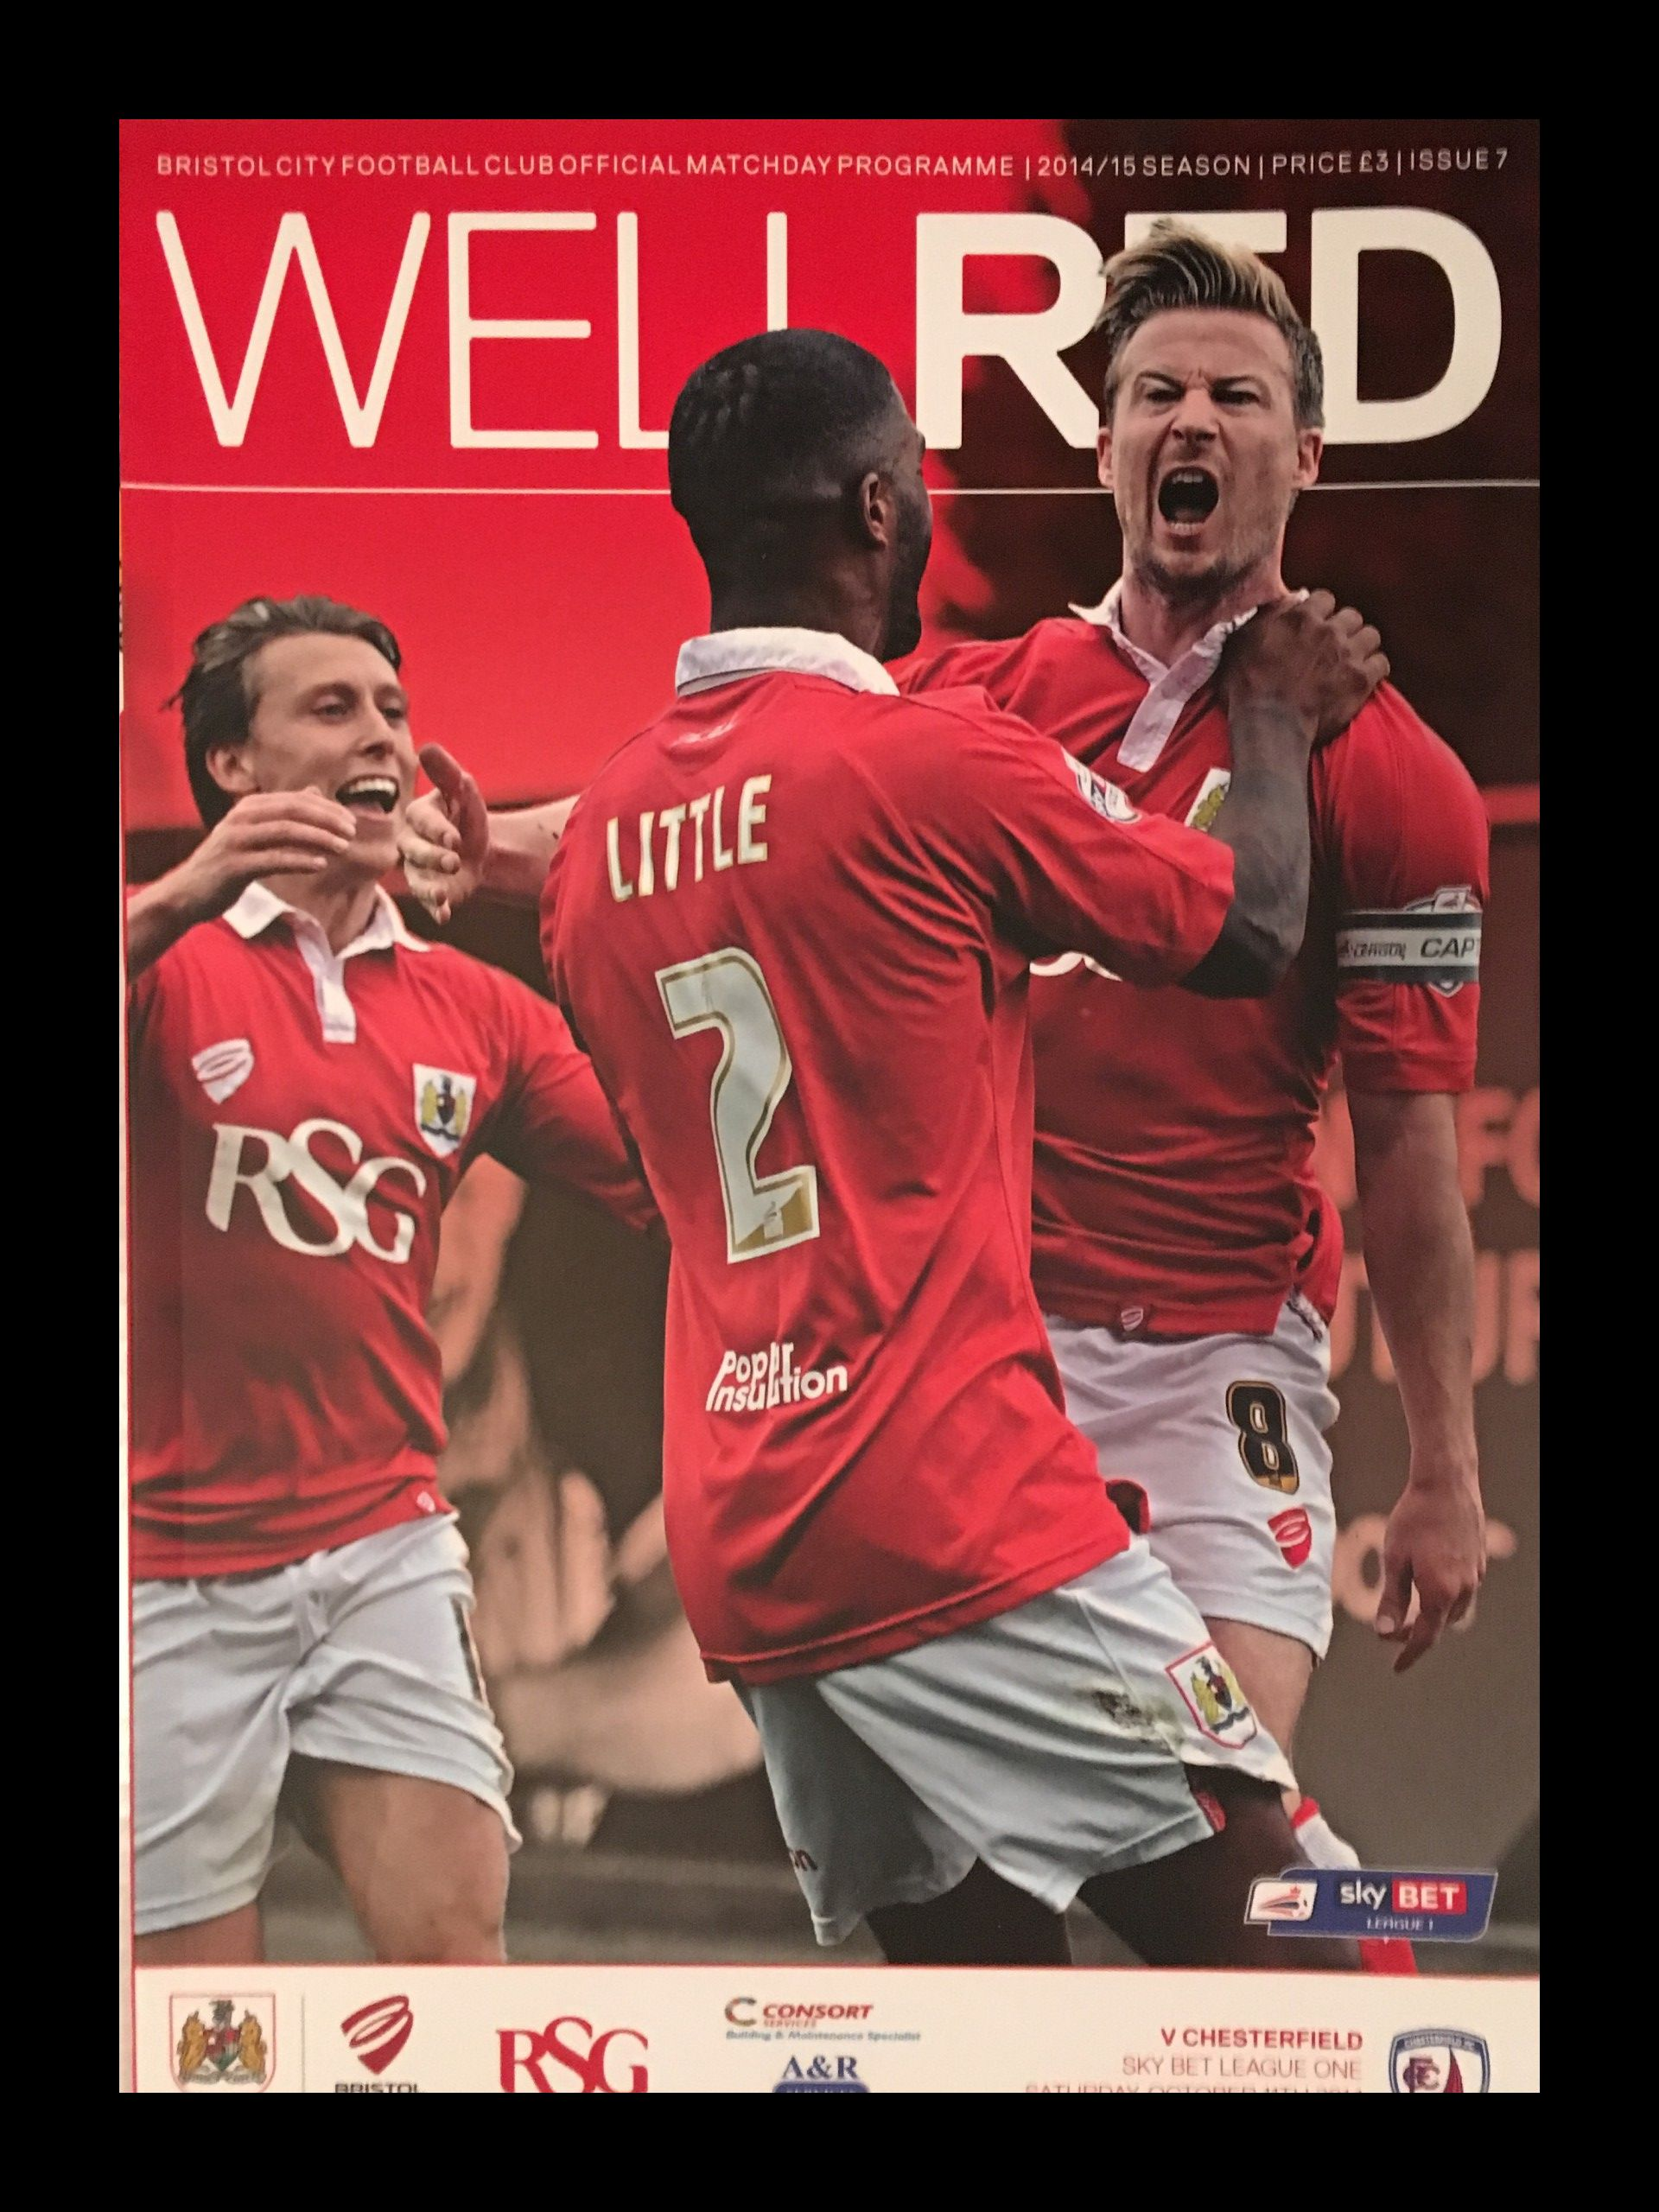 Bristol City v Chesterfield 11-10-2014 Programme